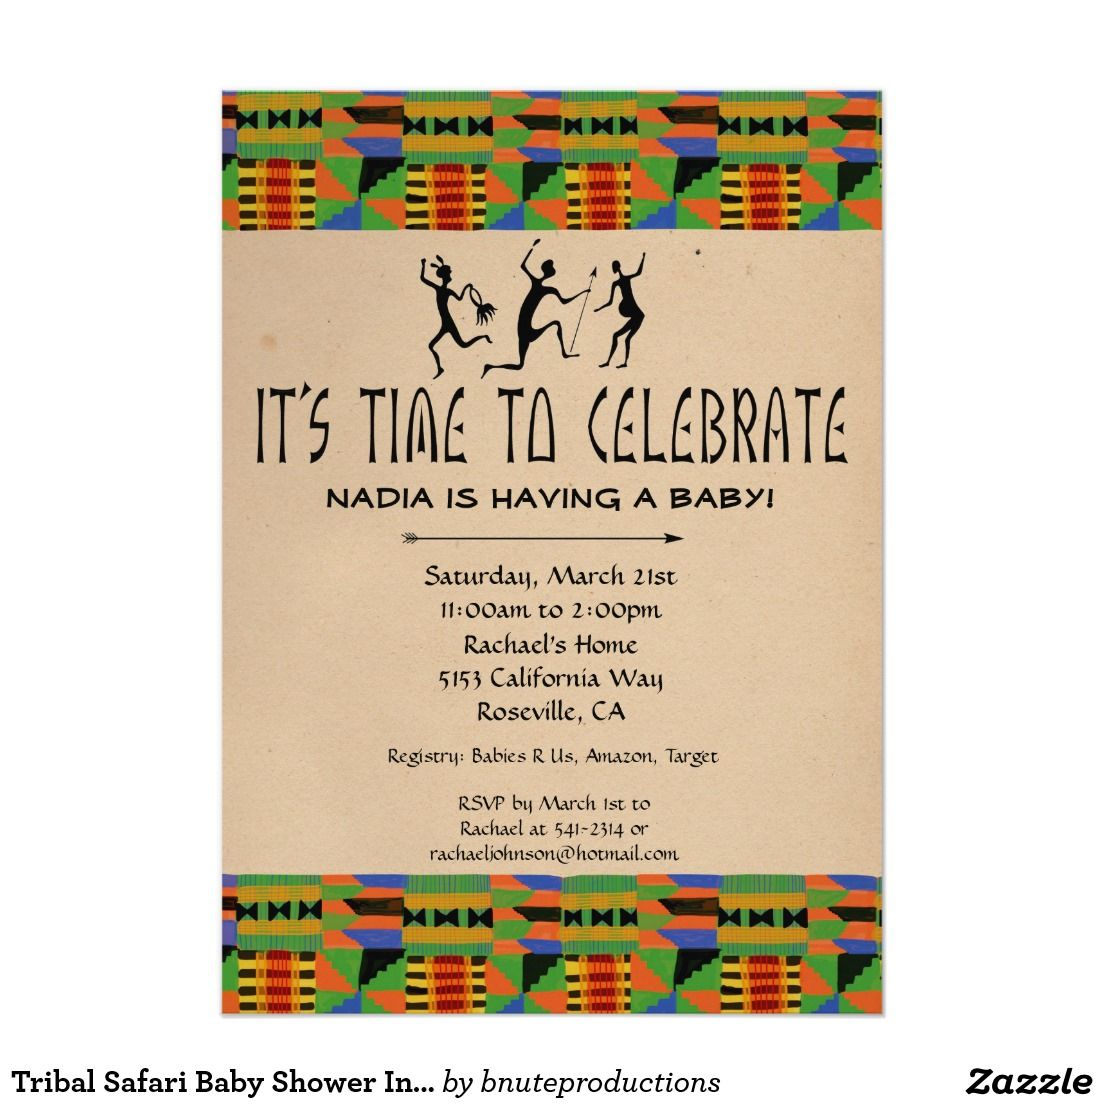 Tribal Safari Baby Shower Invite - Kente Cloth